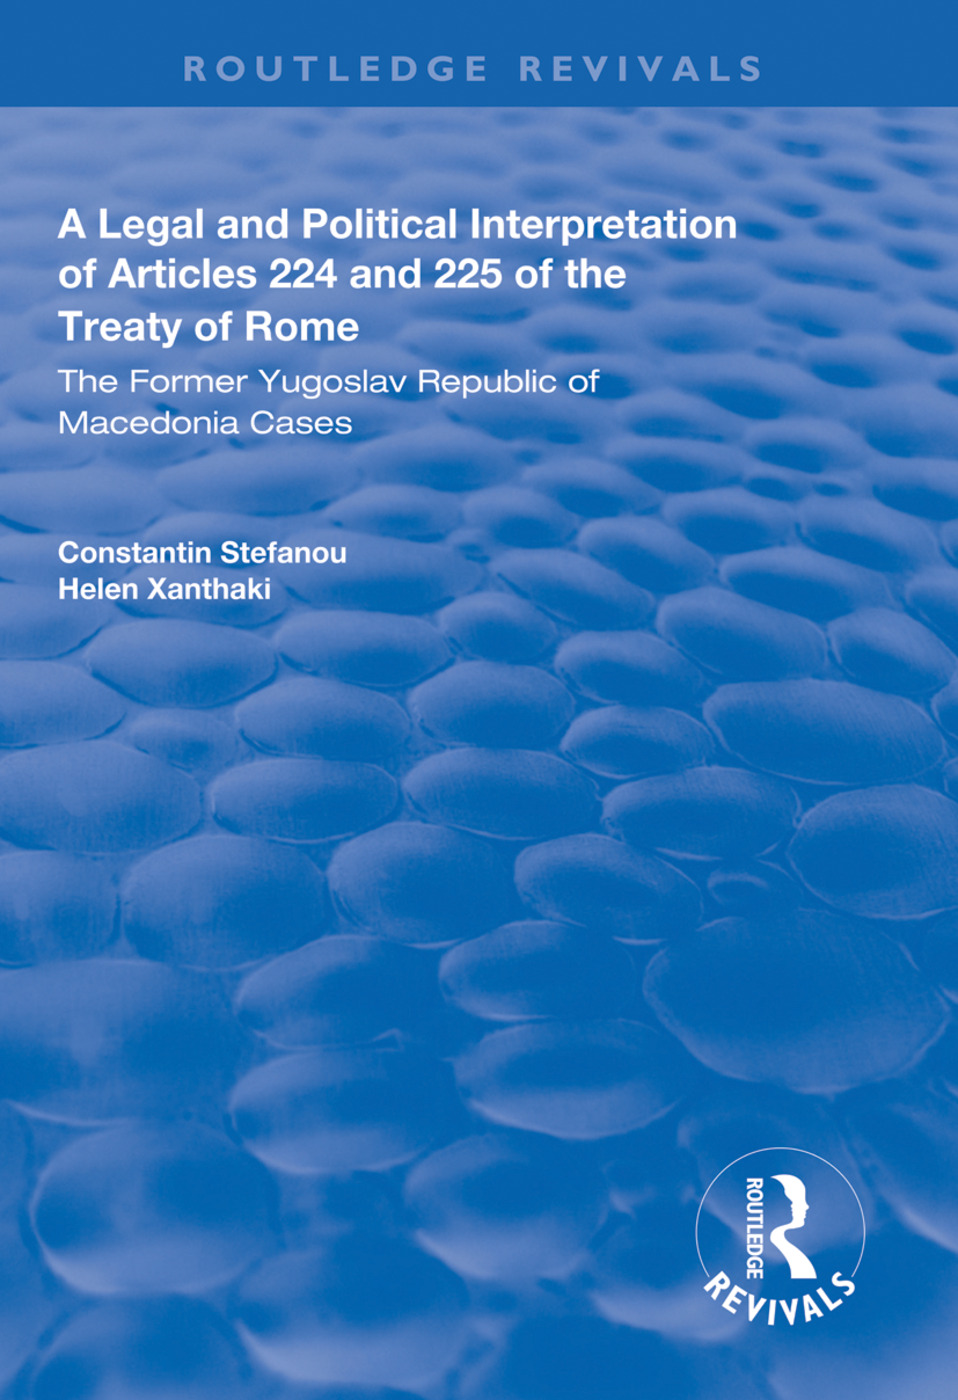 A Legal and Political Interpretation of Articles 224 and 225 of the Treaty of Rome: The Former Yugoslav Republic of Macedonia Cases, 1st Edition (Paperback) book cover